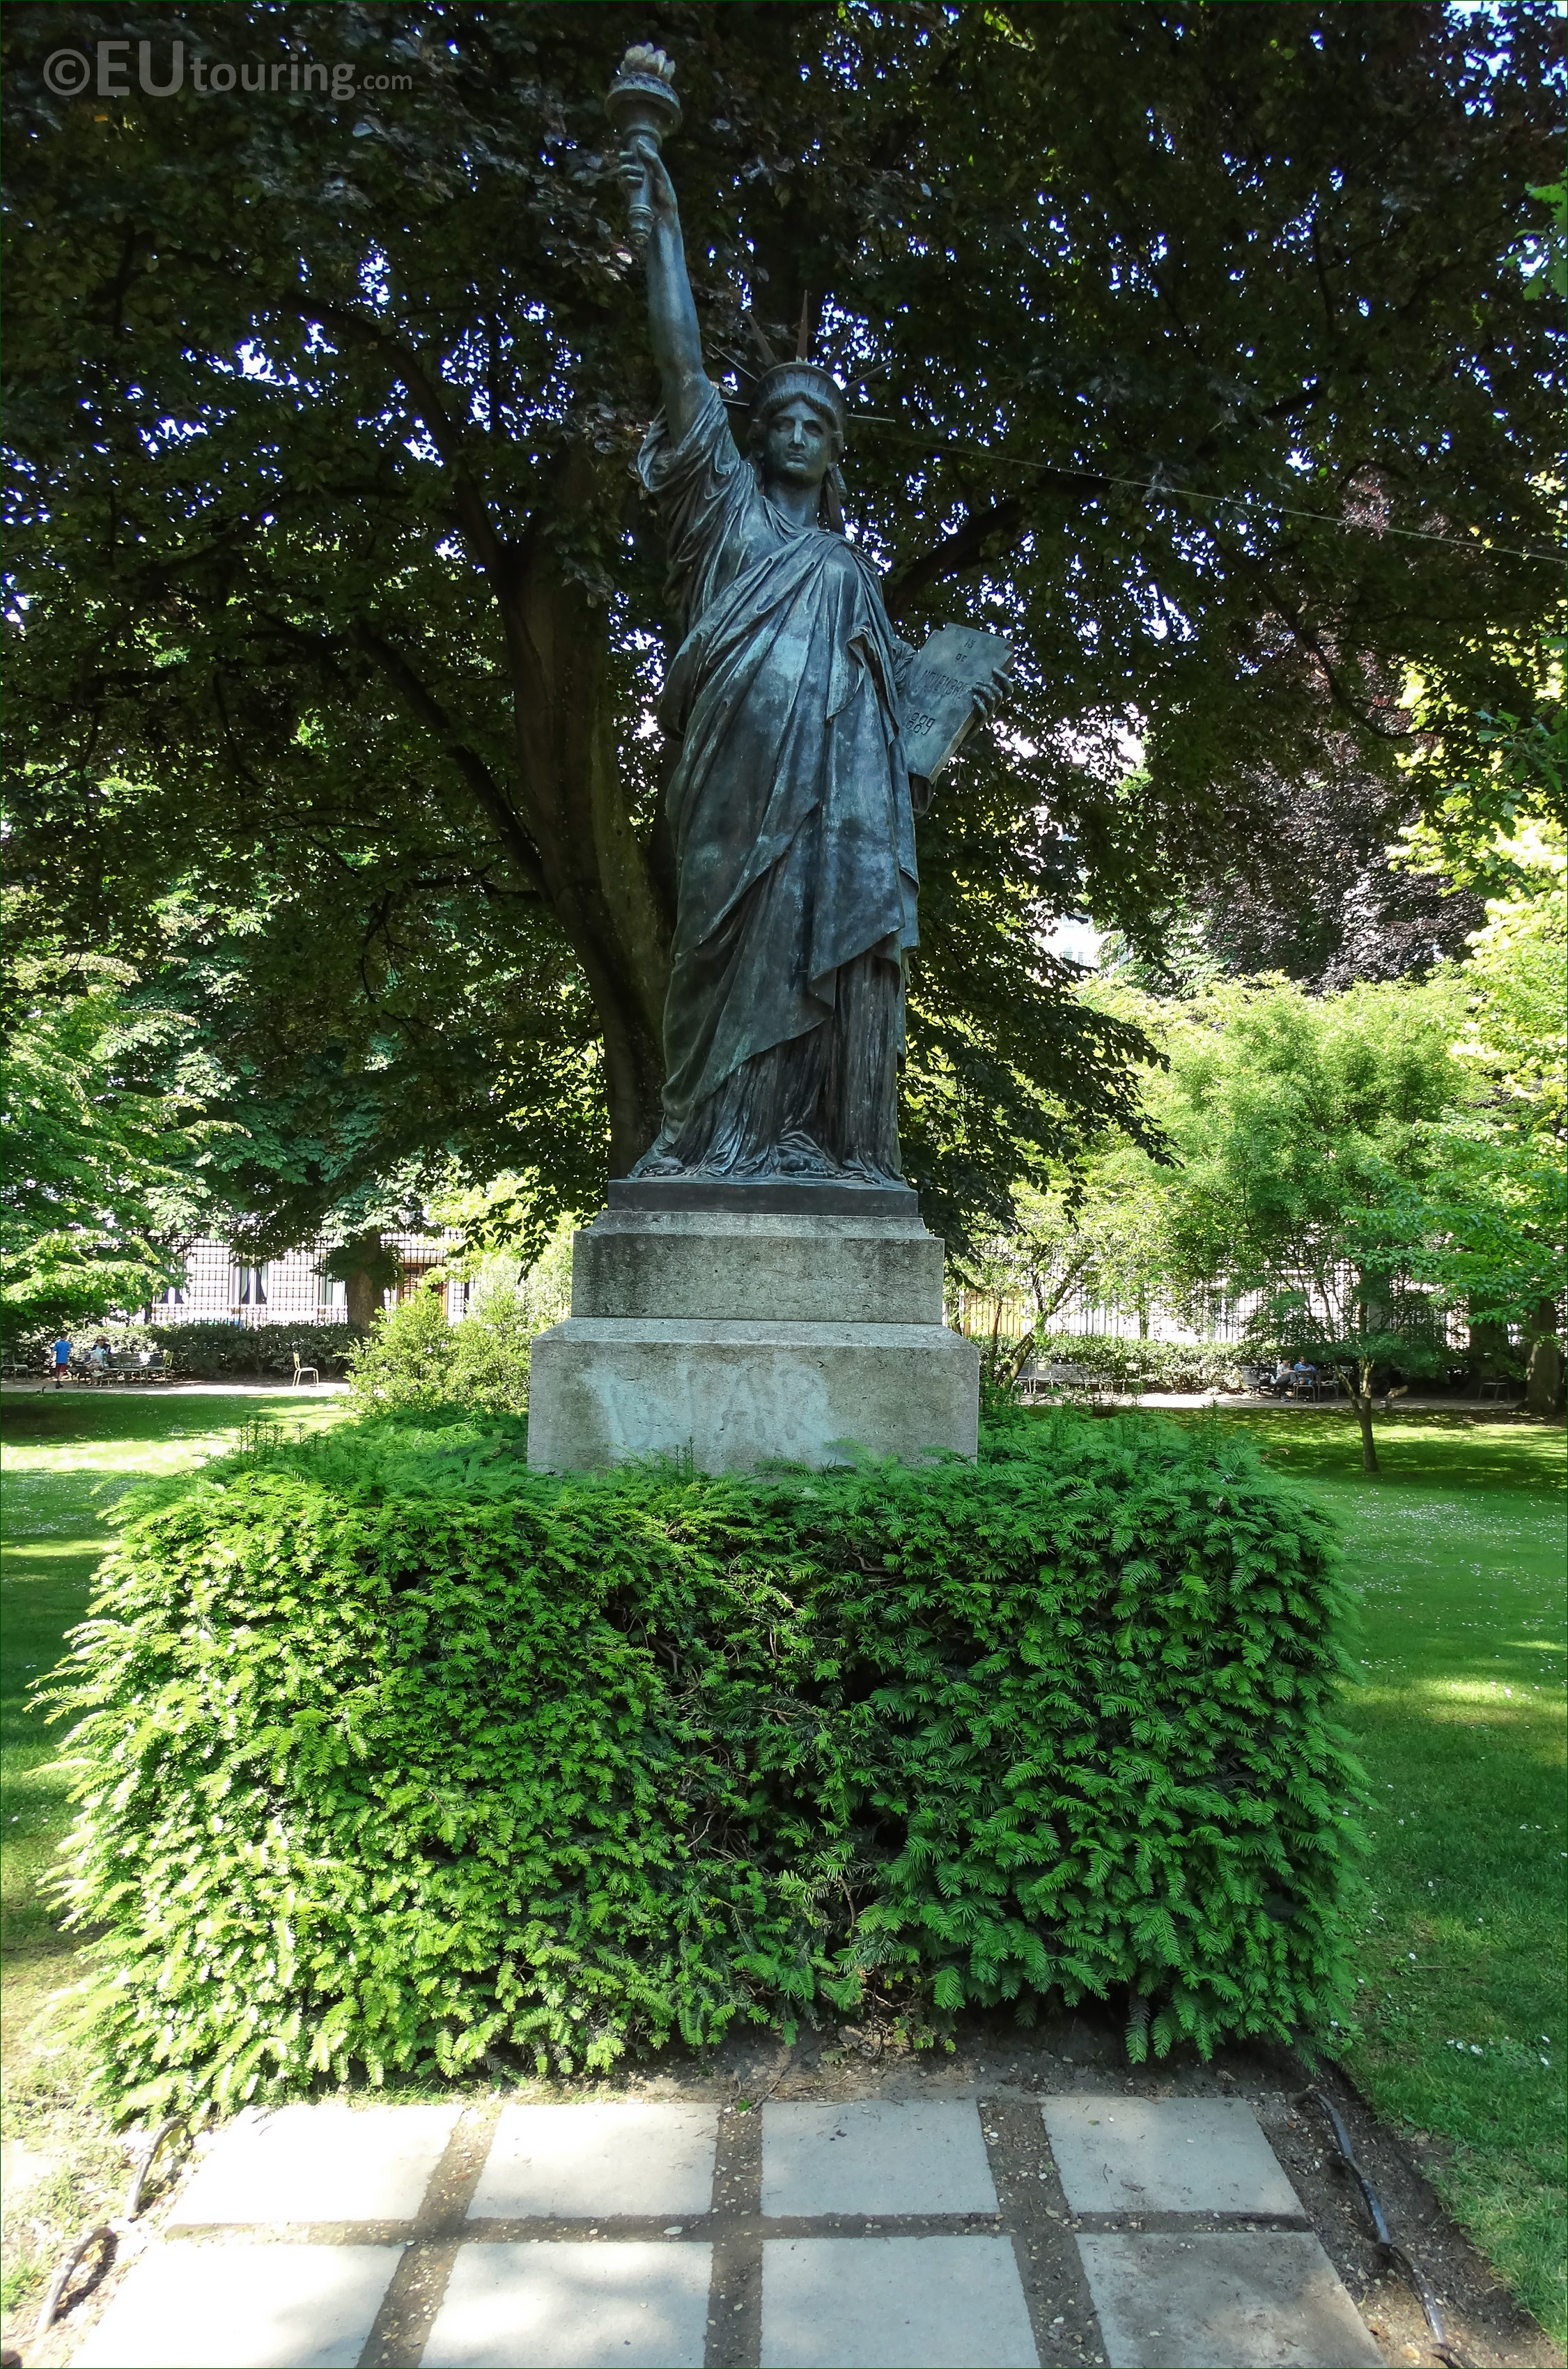 Photos of statue of liberty in luxembourg gardens paris page 301 - Musee jardin du luxembourg ...